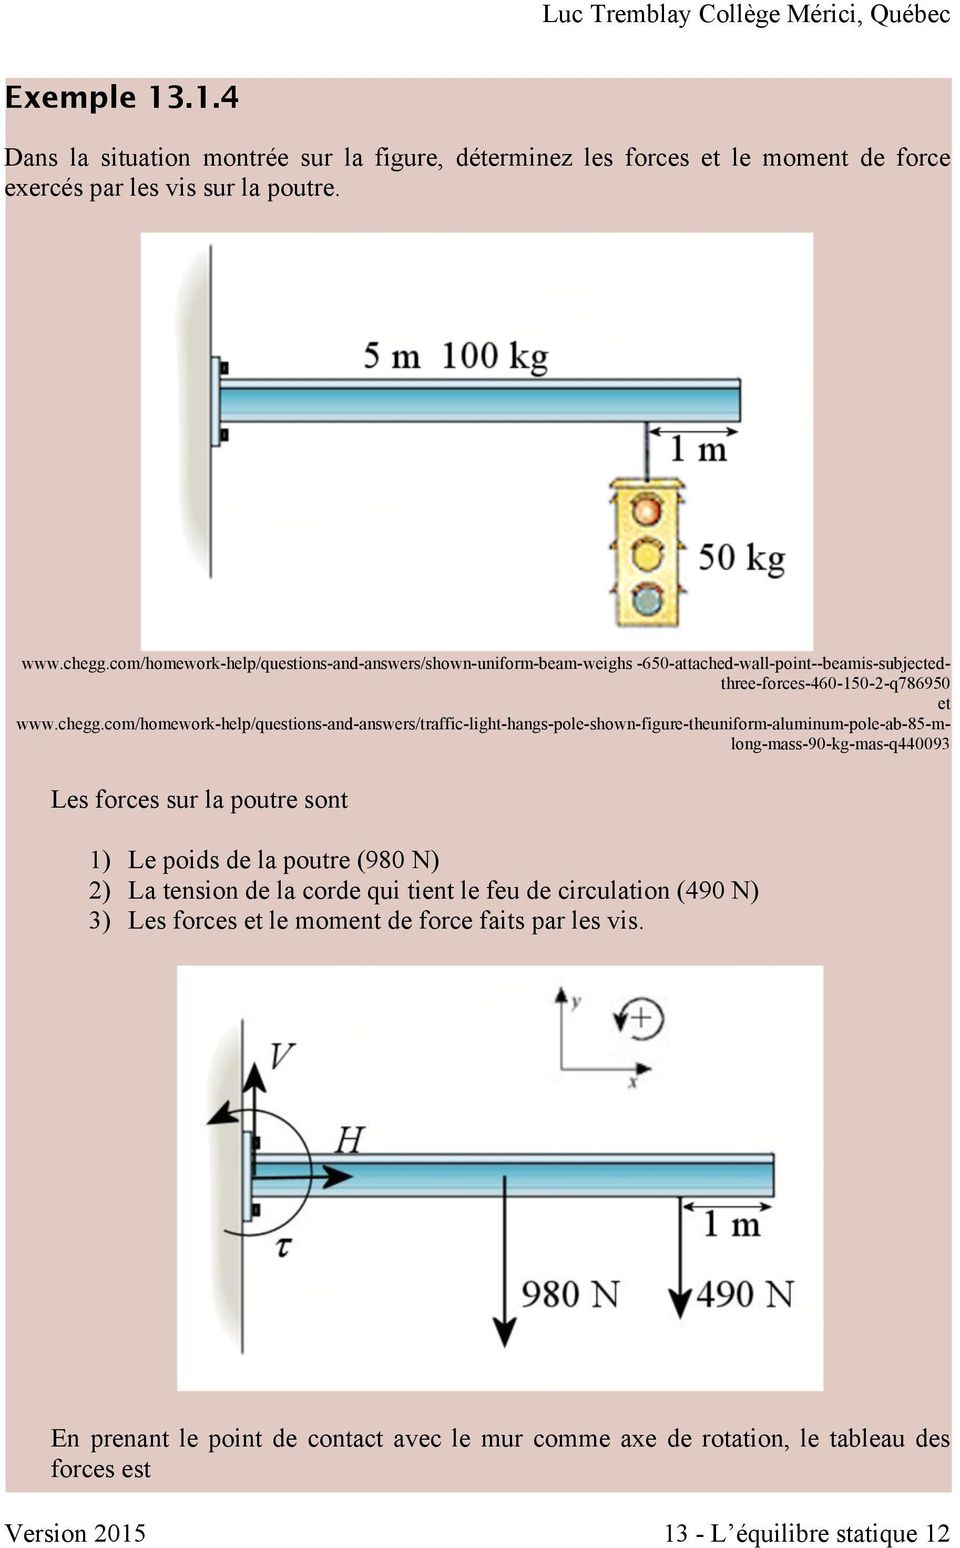 com/homework-help/questions-and-answers/traffic-light-hangs-pole-shown-figure-theuniform-aluminum-pole-ab-85-mlong-mass-90-kg-mas-q440093 Les forces sur la poutre sont 1) Le poids de la